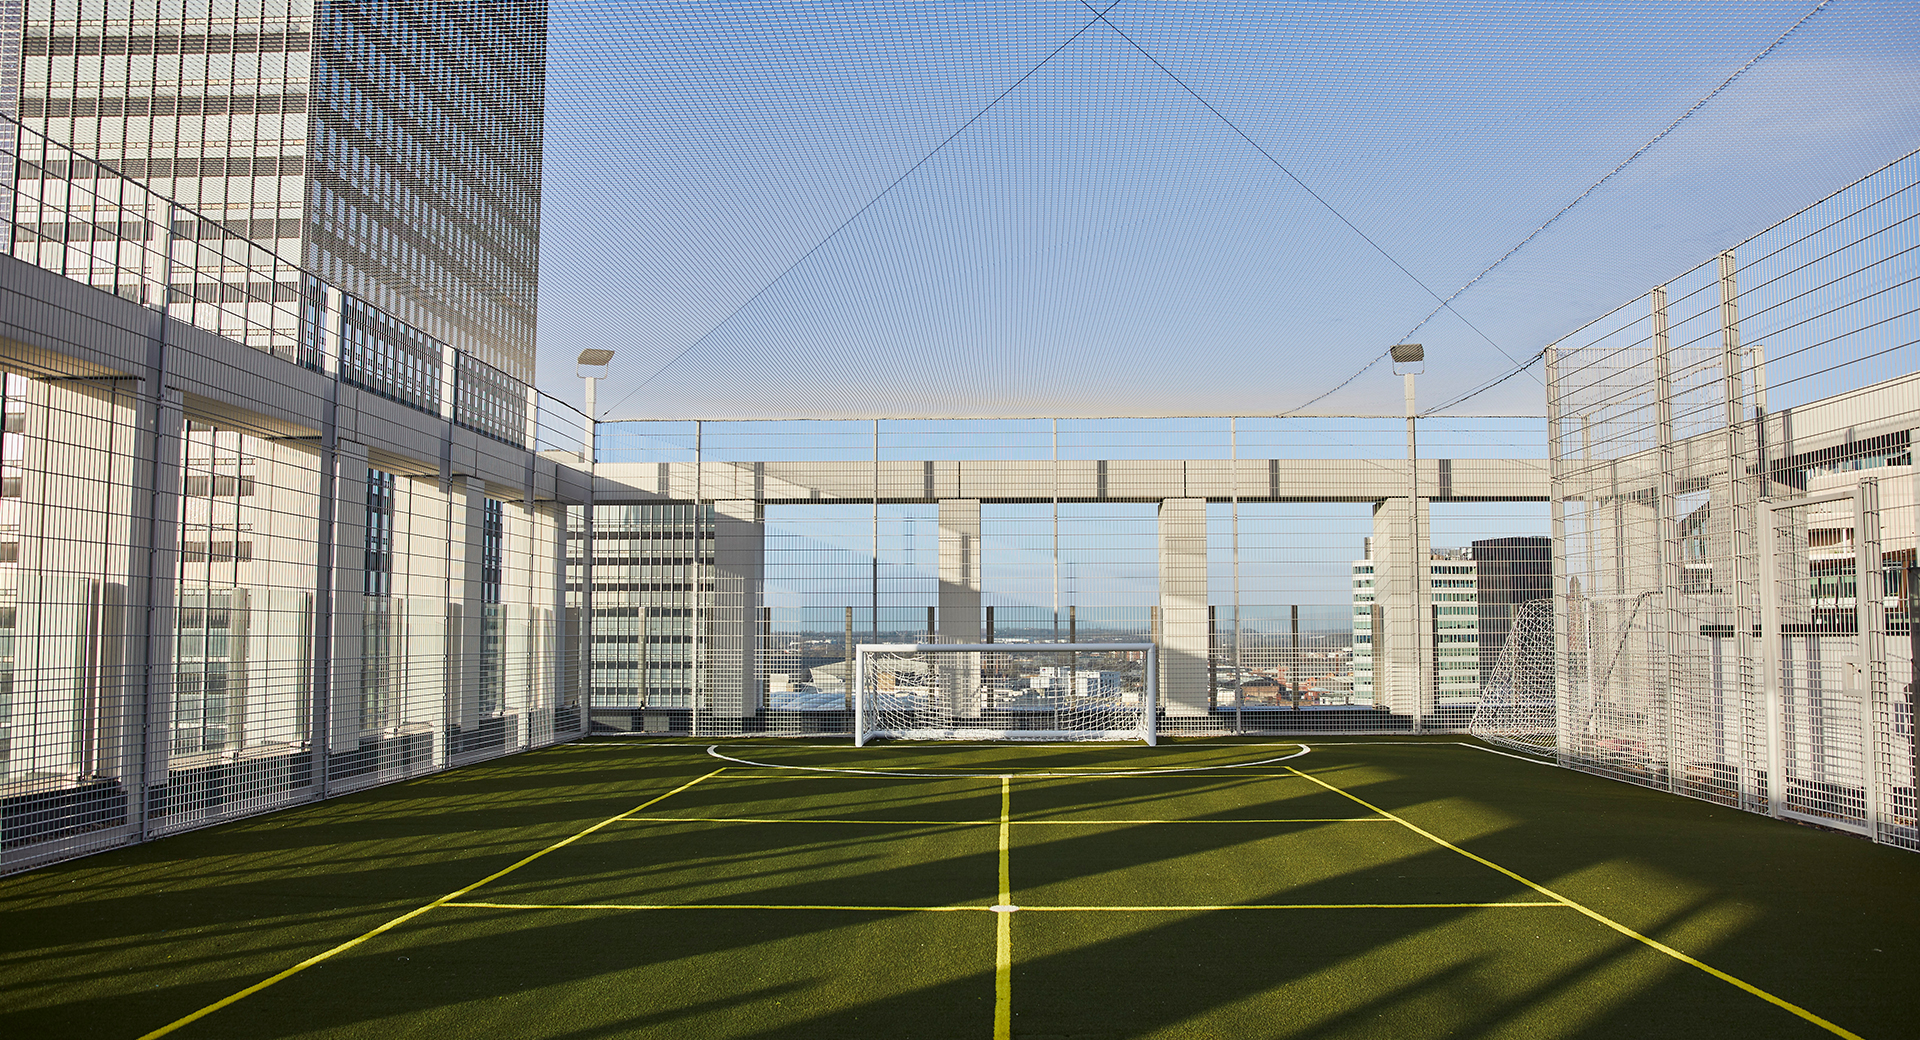 rooftop sports pitch with goals